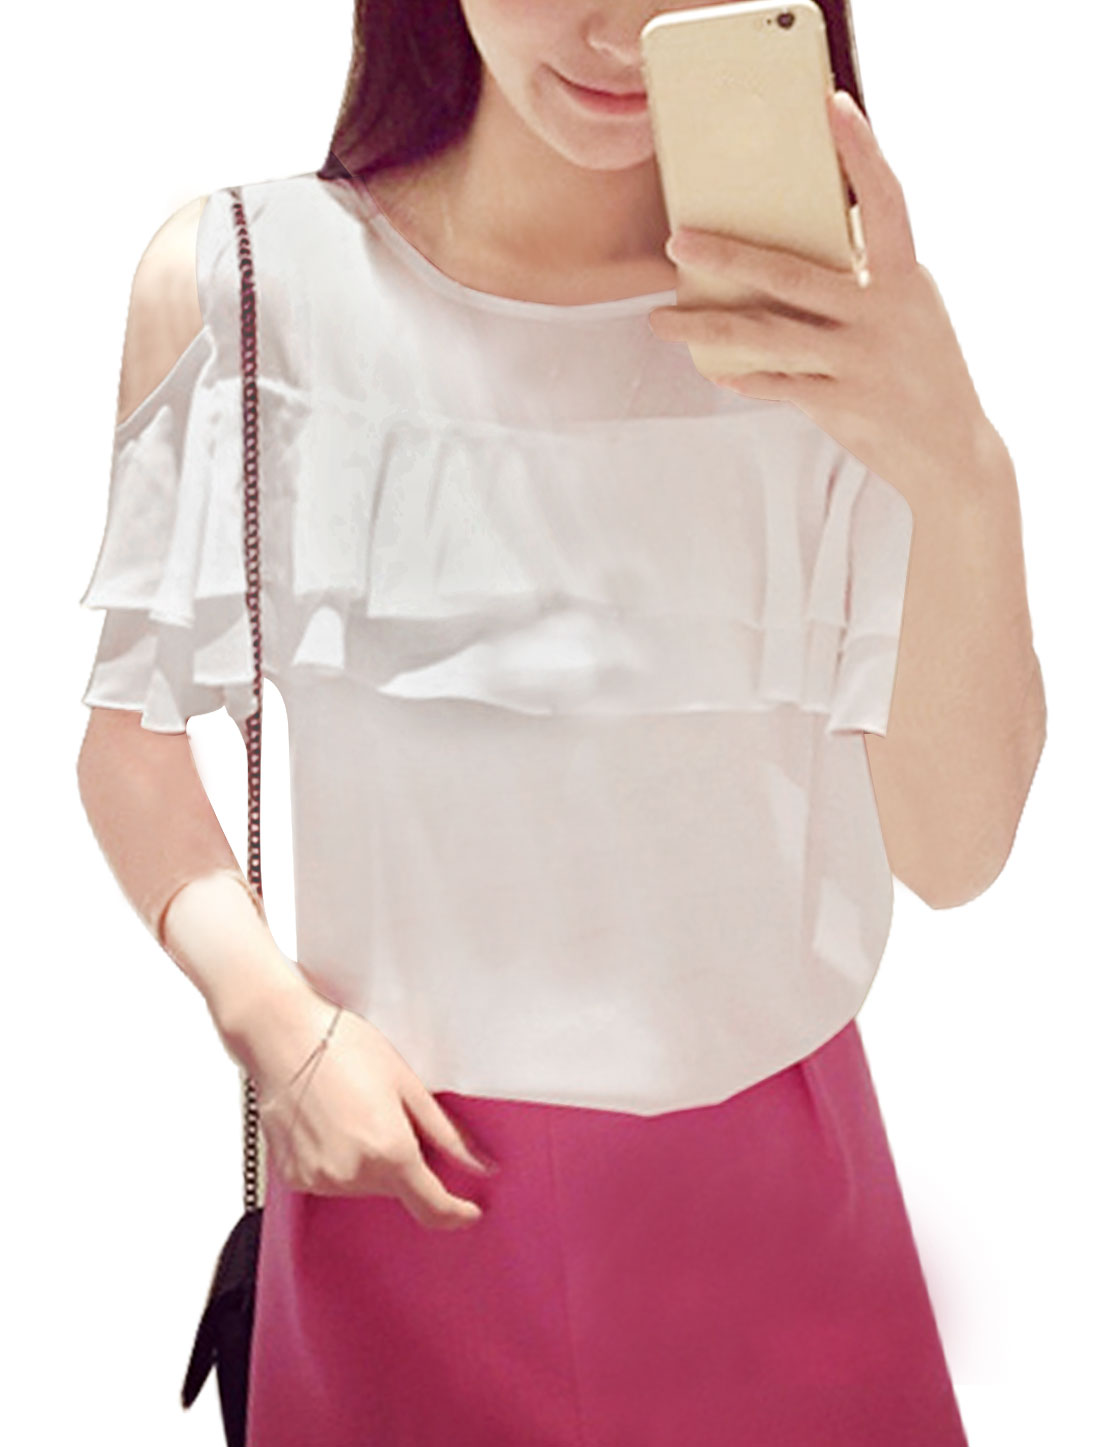 Ladies Round Neck Short Sleeves Flouncing Upper Chiffon Tops White XS